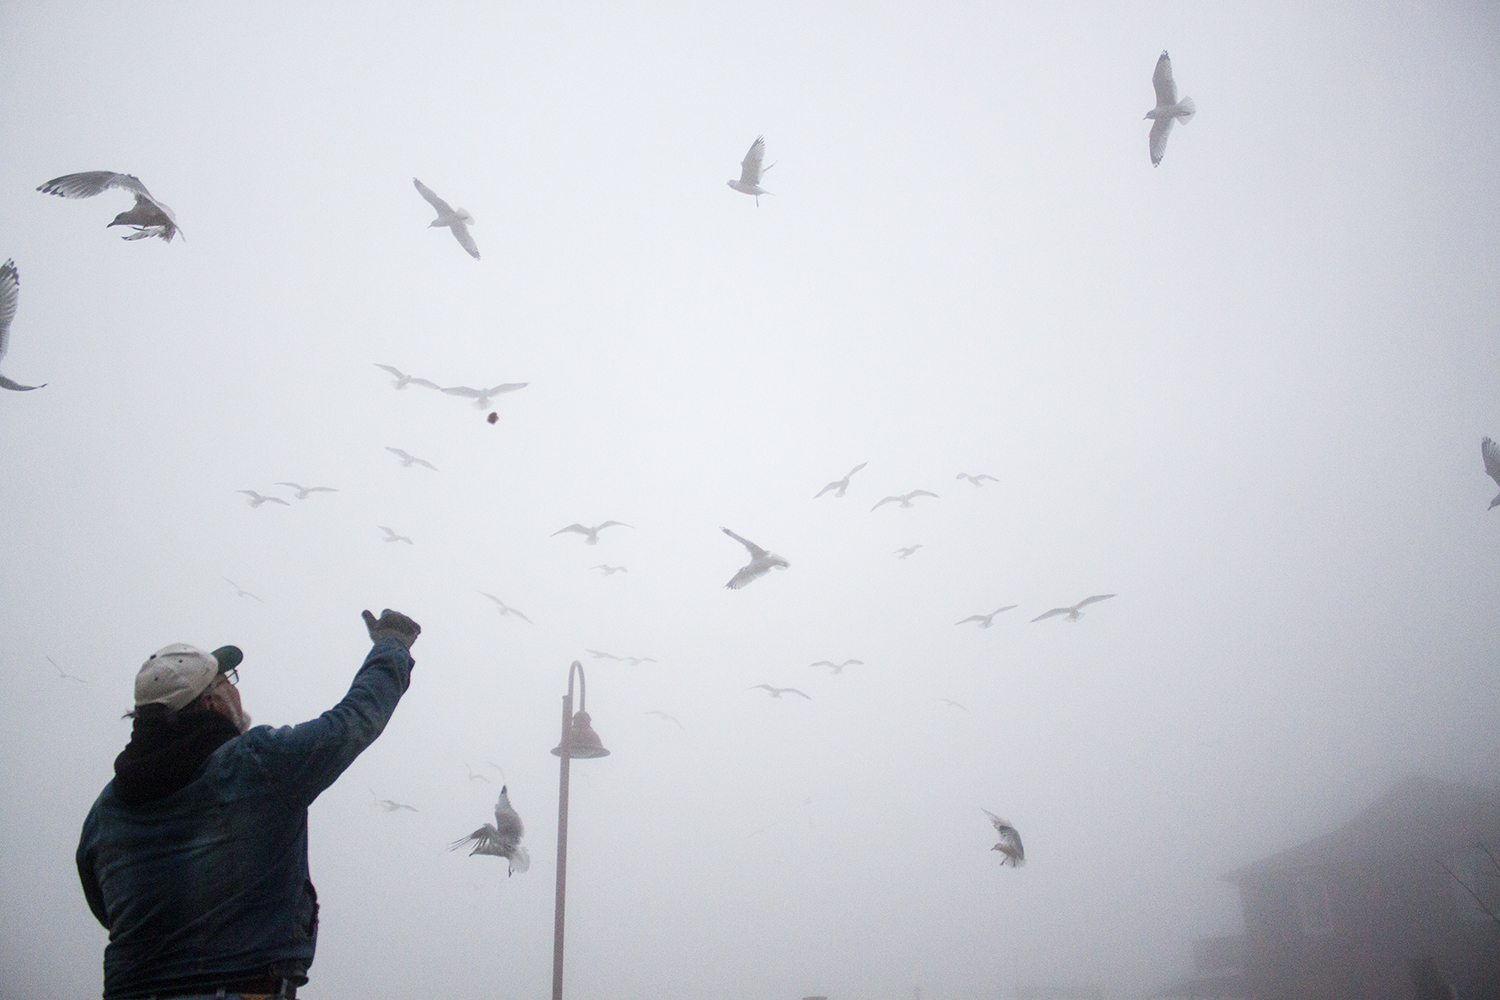 Rik Gendron feeds birds at the waterfront in Ossining, New York.